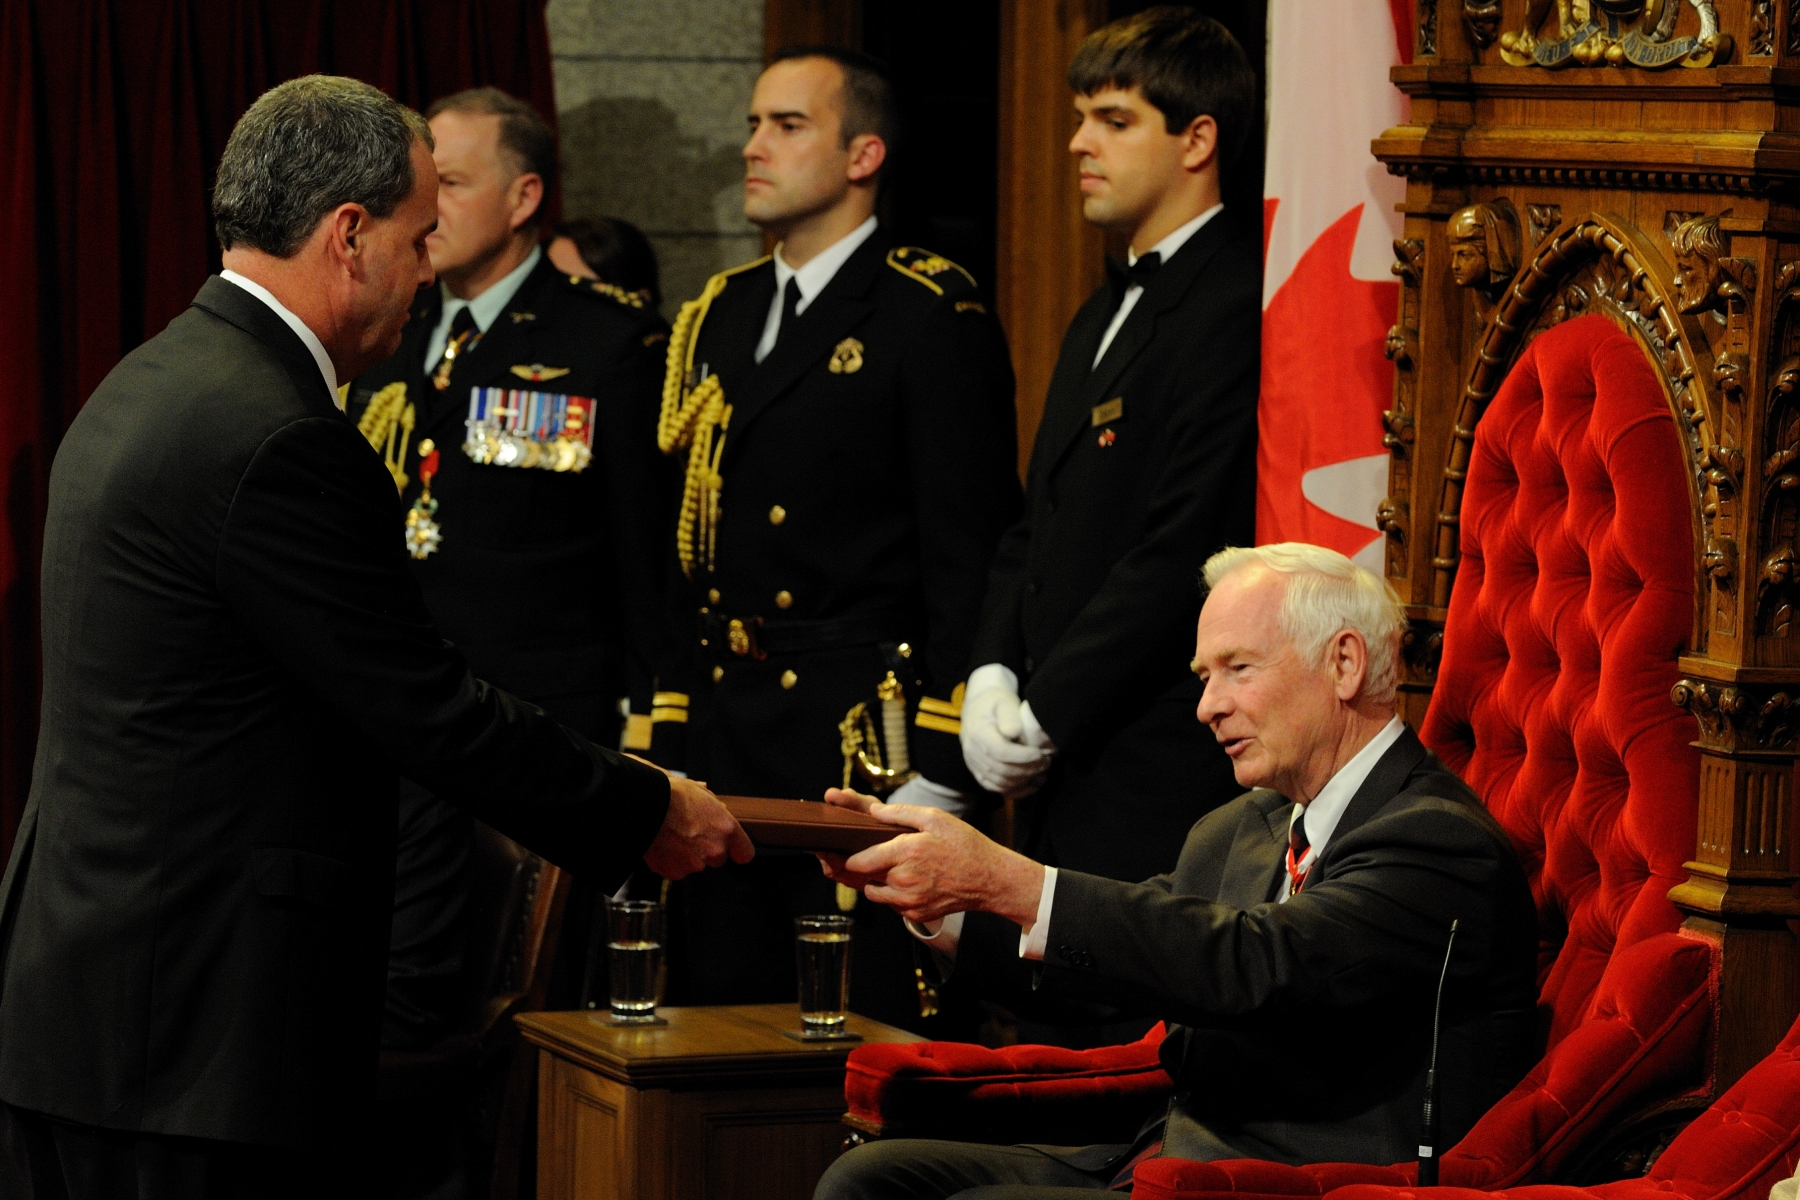 The Secretary to the Governor General Mr. Stephen Wallace gave the Speech from the Throne to His Excellency. The government of the day is Her Majesty's government and accordingly the Governor General, as the Queen's representative in Canada, reads the Speech from the Throne.